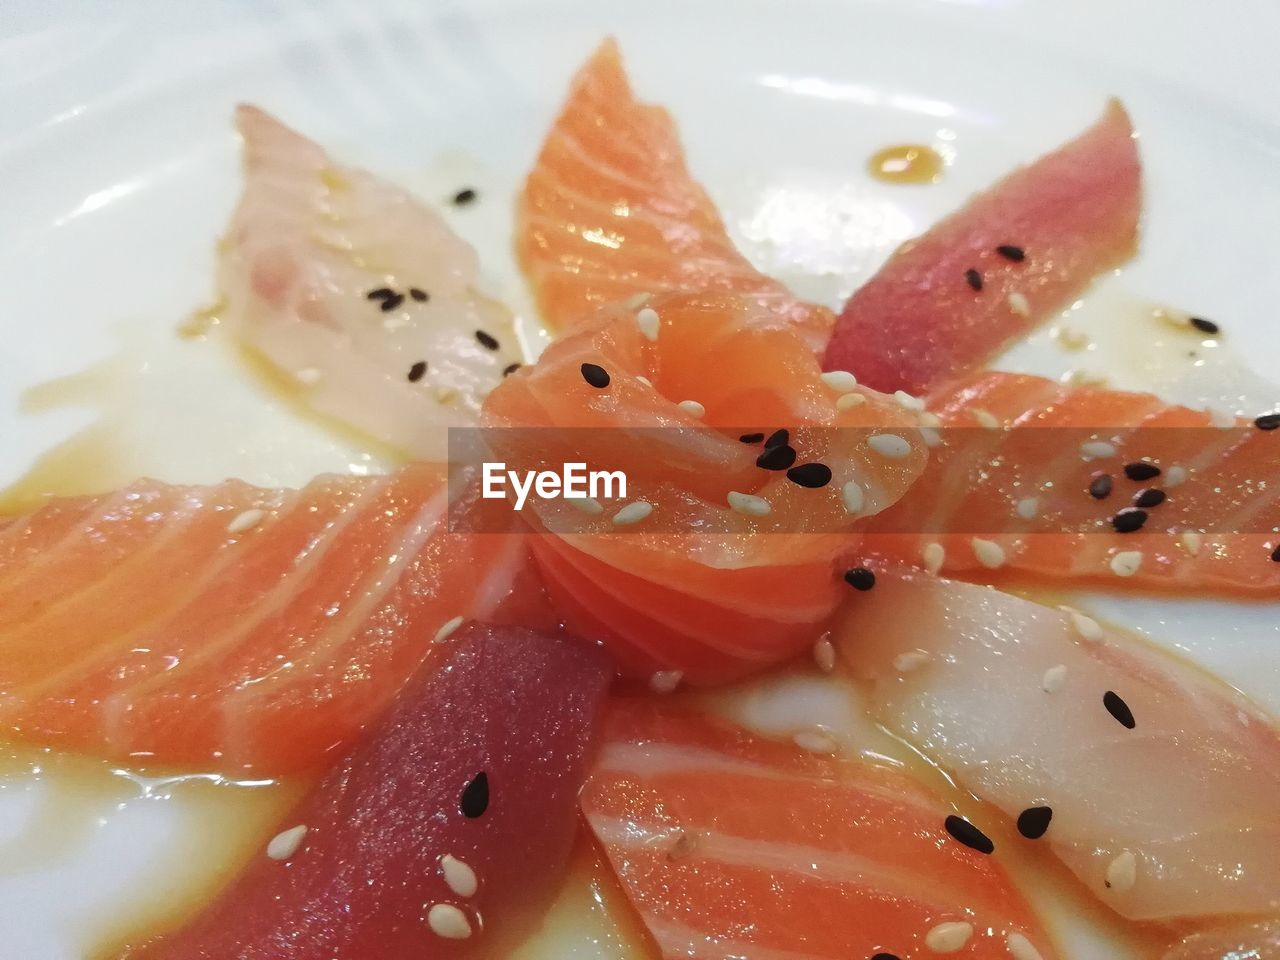 food, food and drink, plate, healthy eating, close-up, freshness, still life, indoors, ready-to-eat, wellbeing, seafood, serving size, fish, no people, salmon - seafood, asian food, animal, japanese food, fruit, indulgence, caviar, temptation